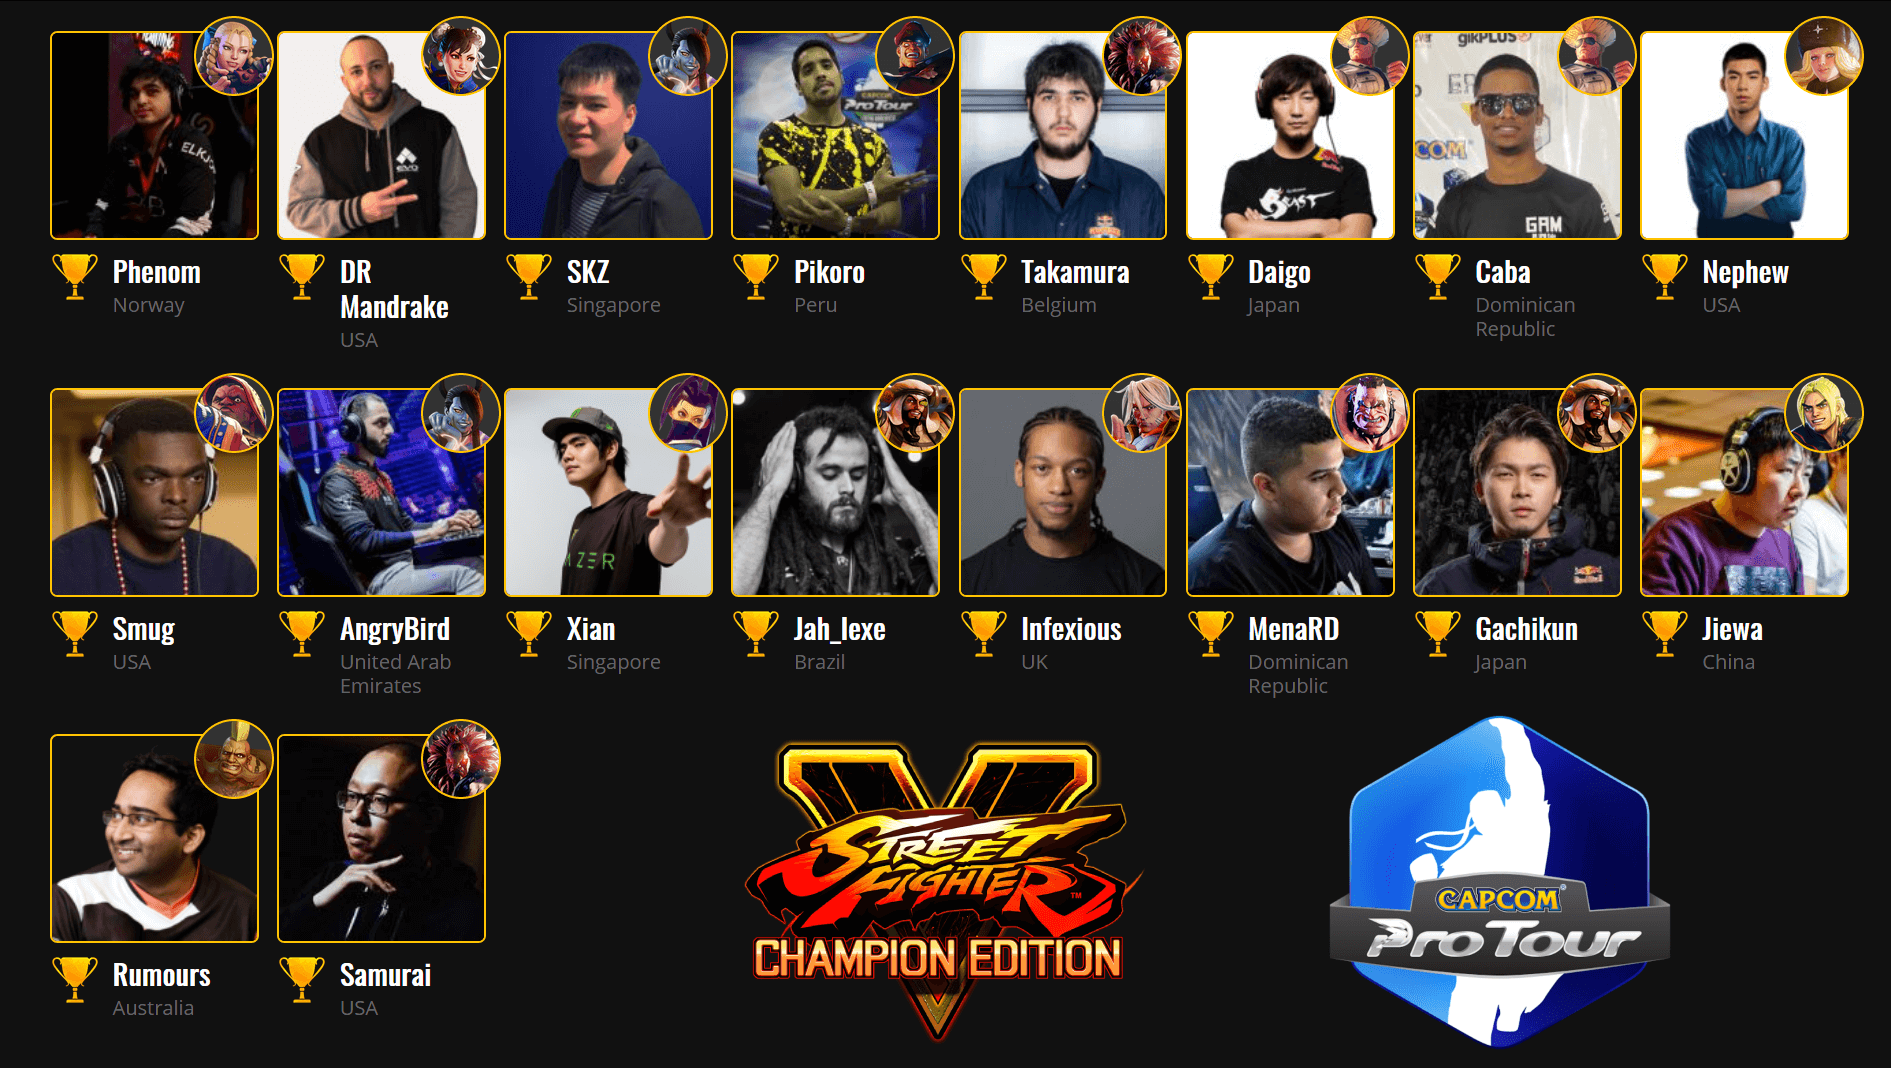 Meet 18 Winners of Capcom Pro 2020